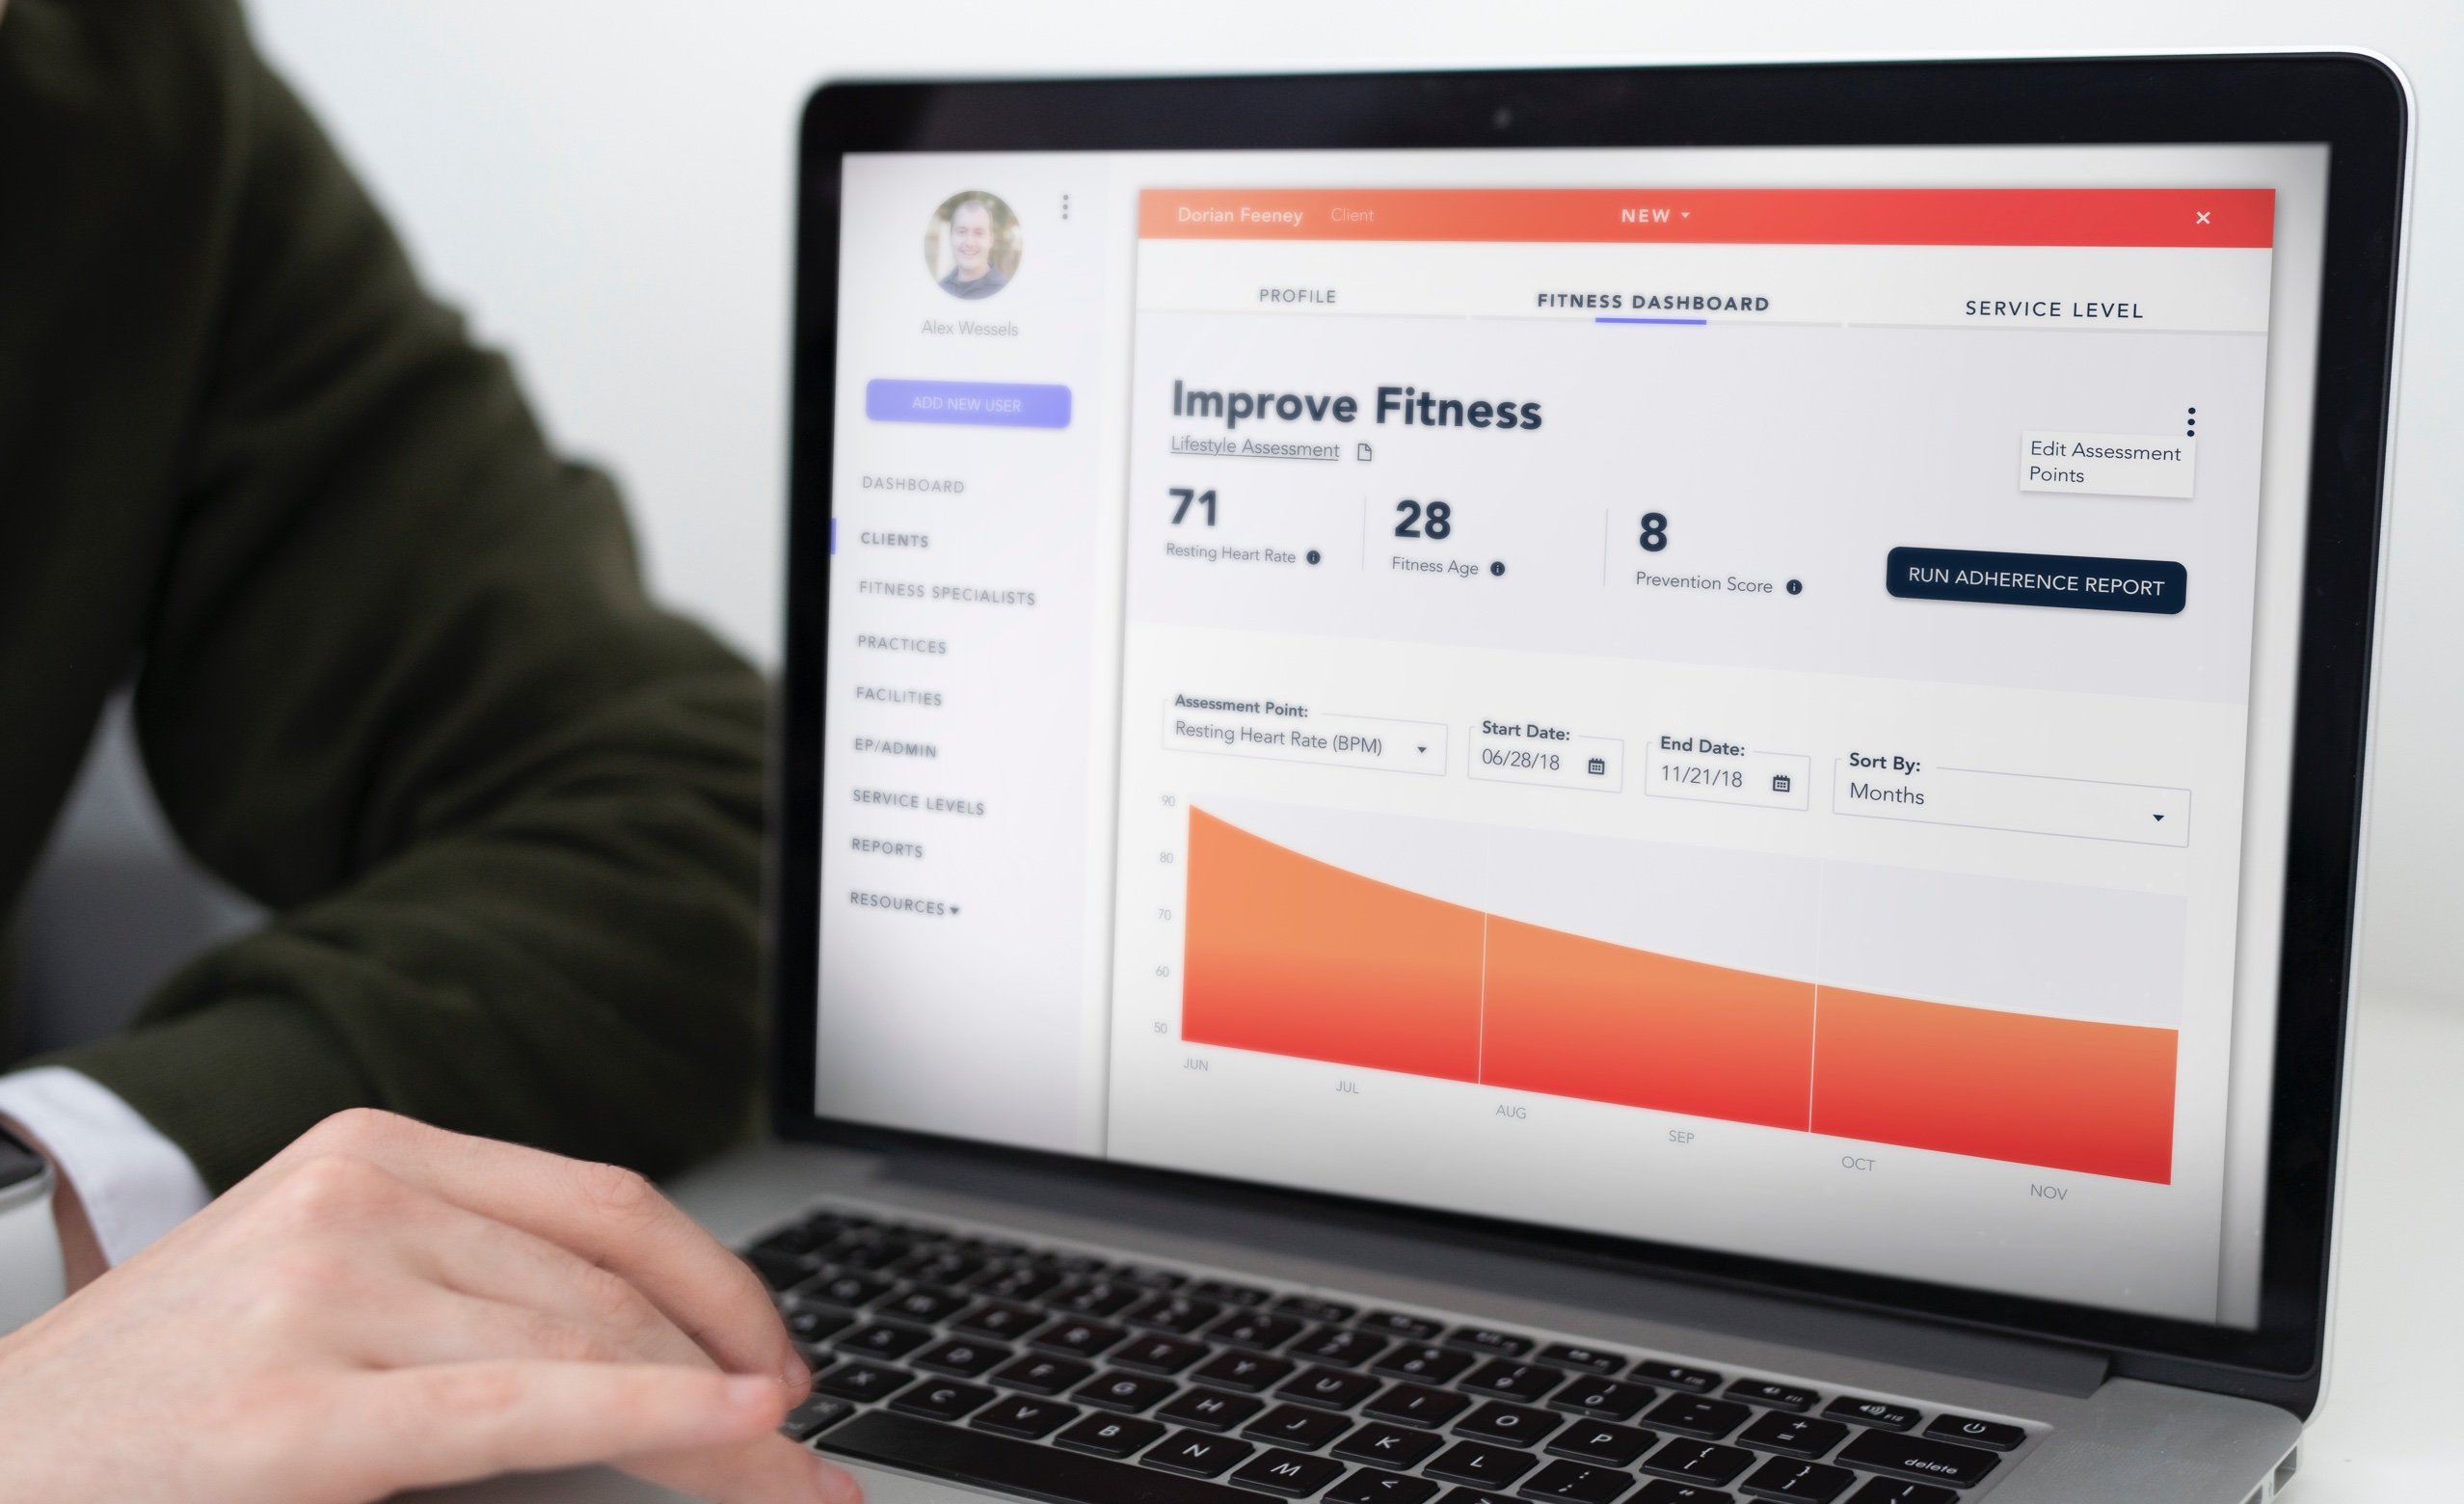 Physician looking at fitness dashboard